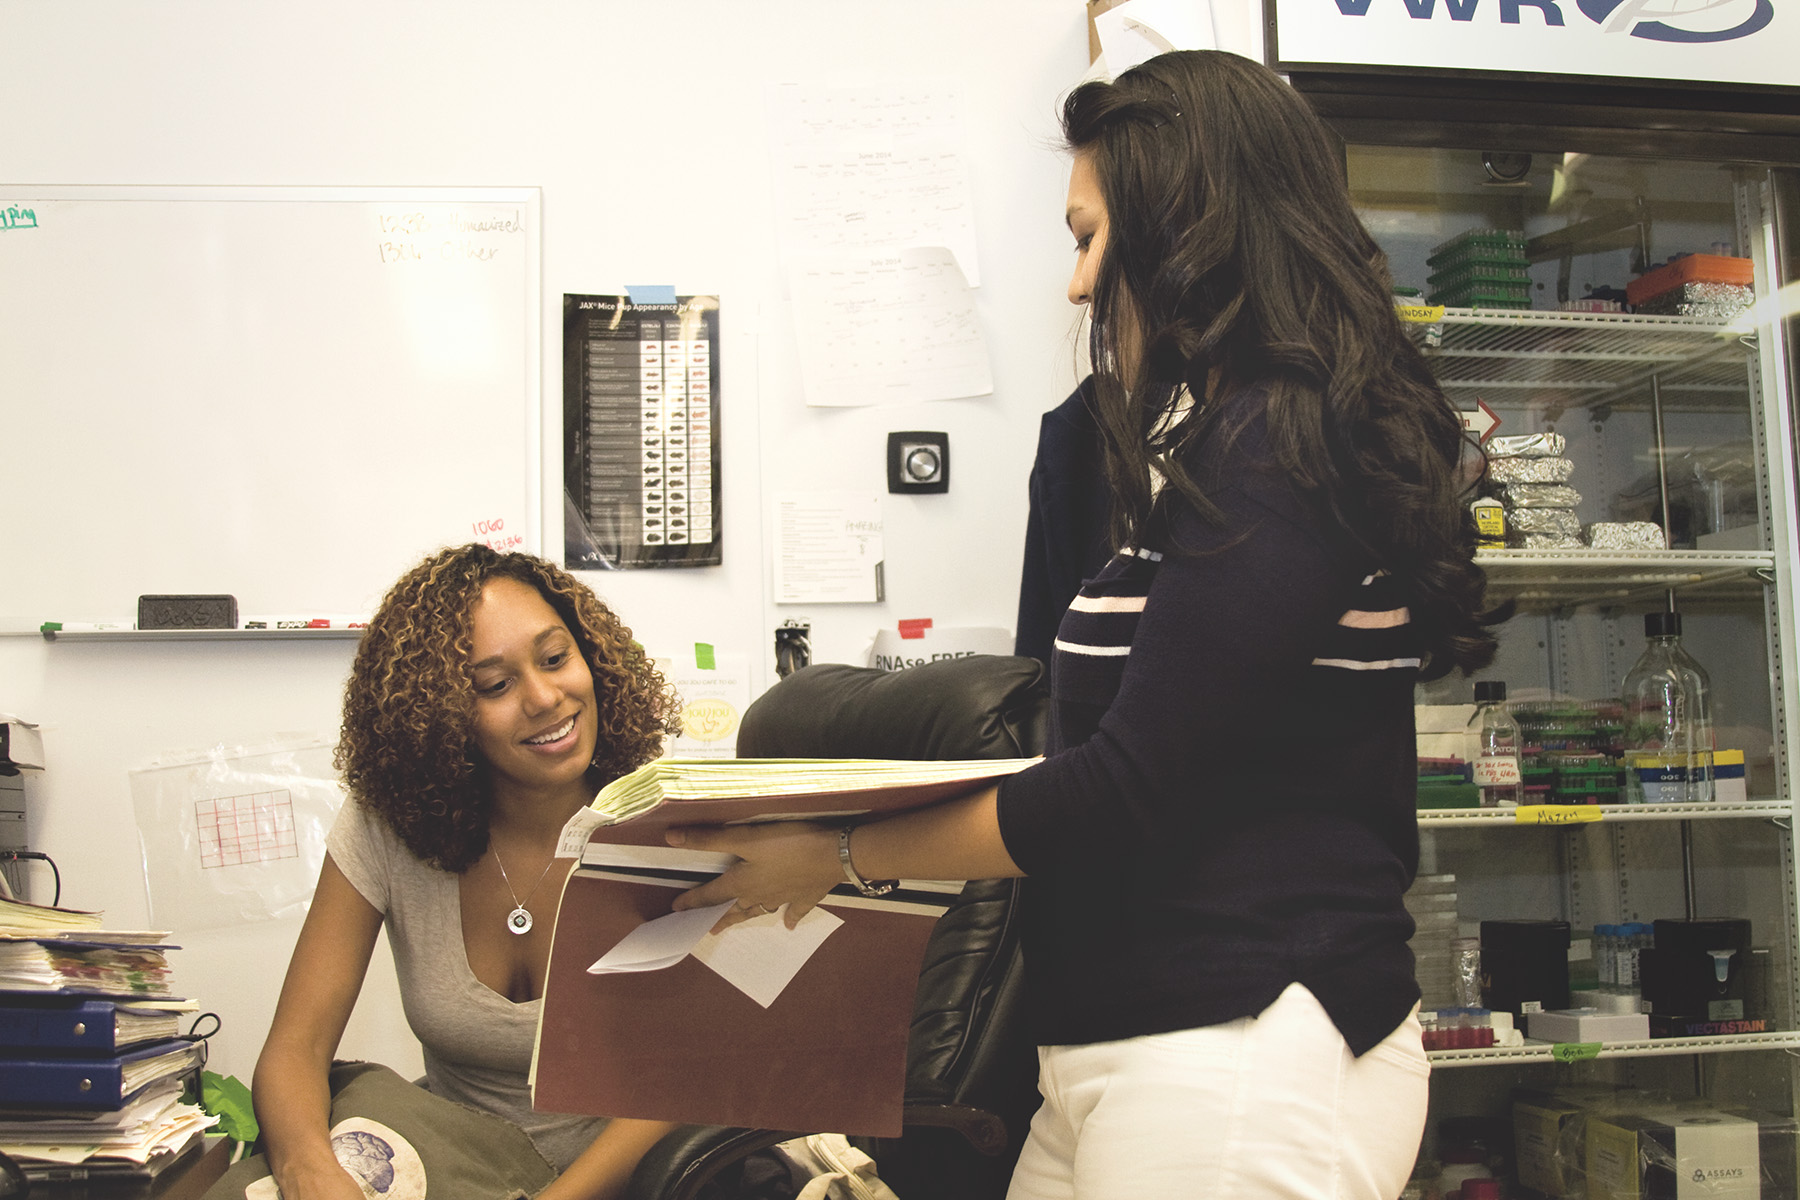 Meghin and Tabia discuss a set of lab test results.